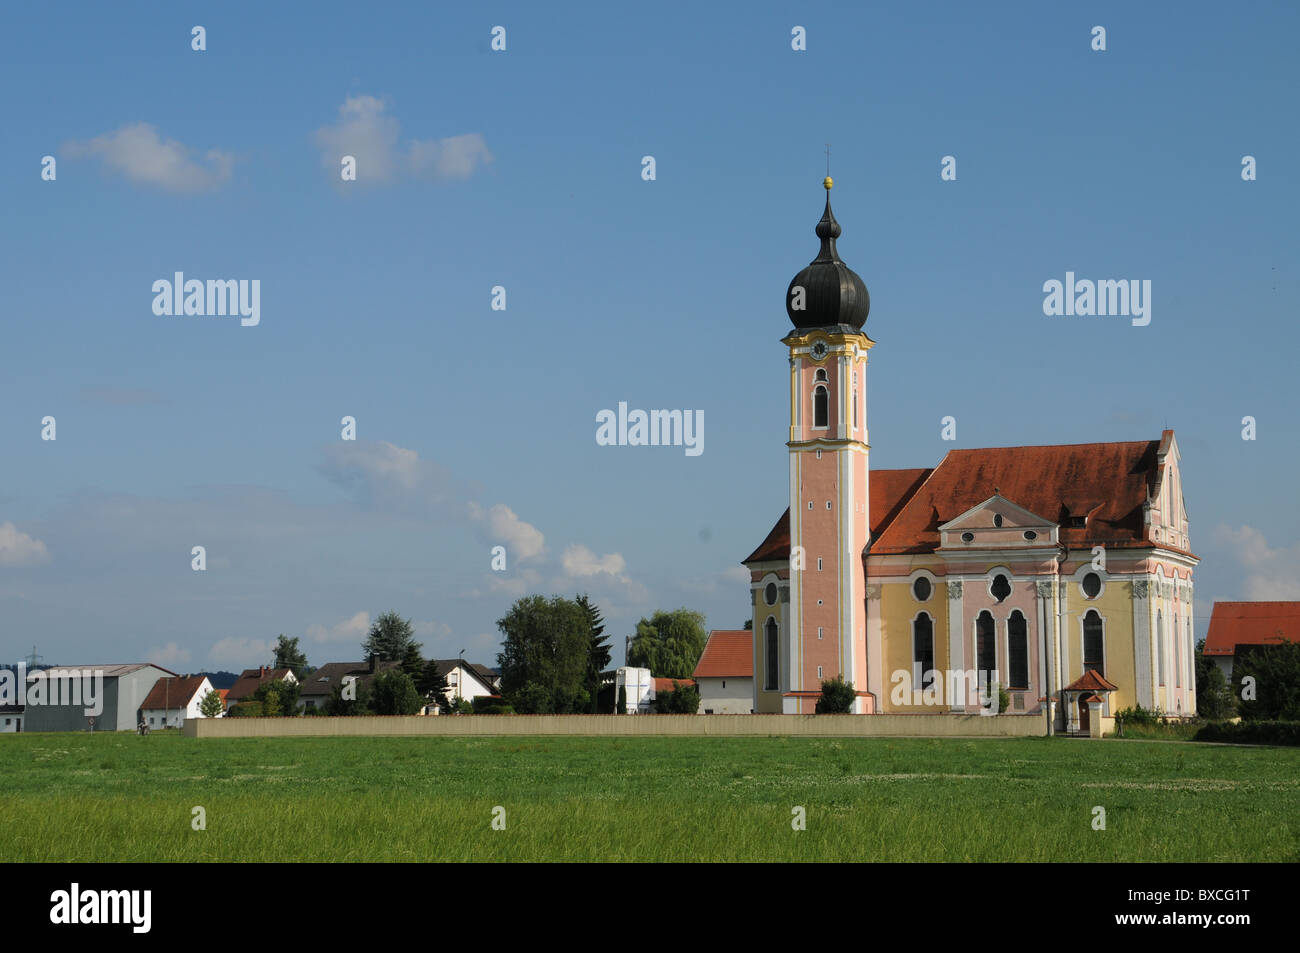 Baroque church in Pless, Bavaria - Stock Image